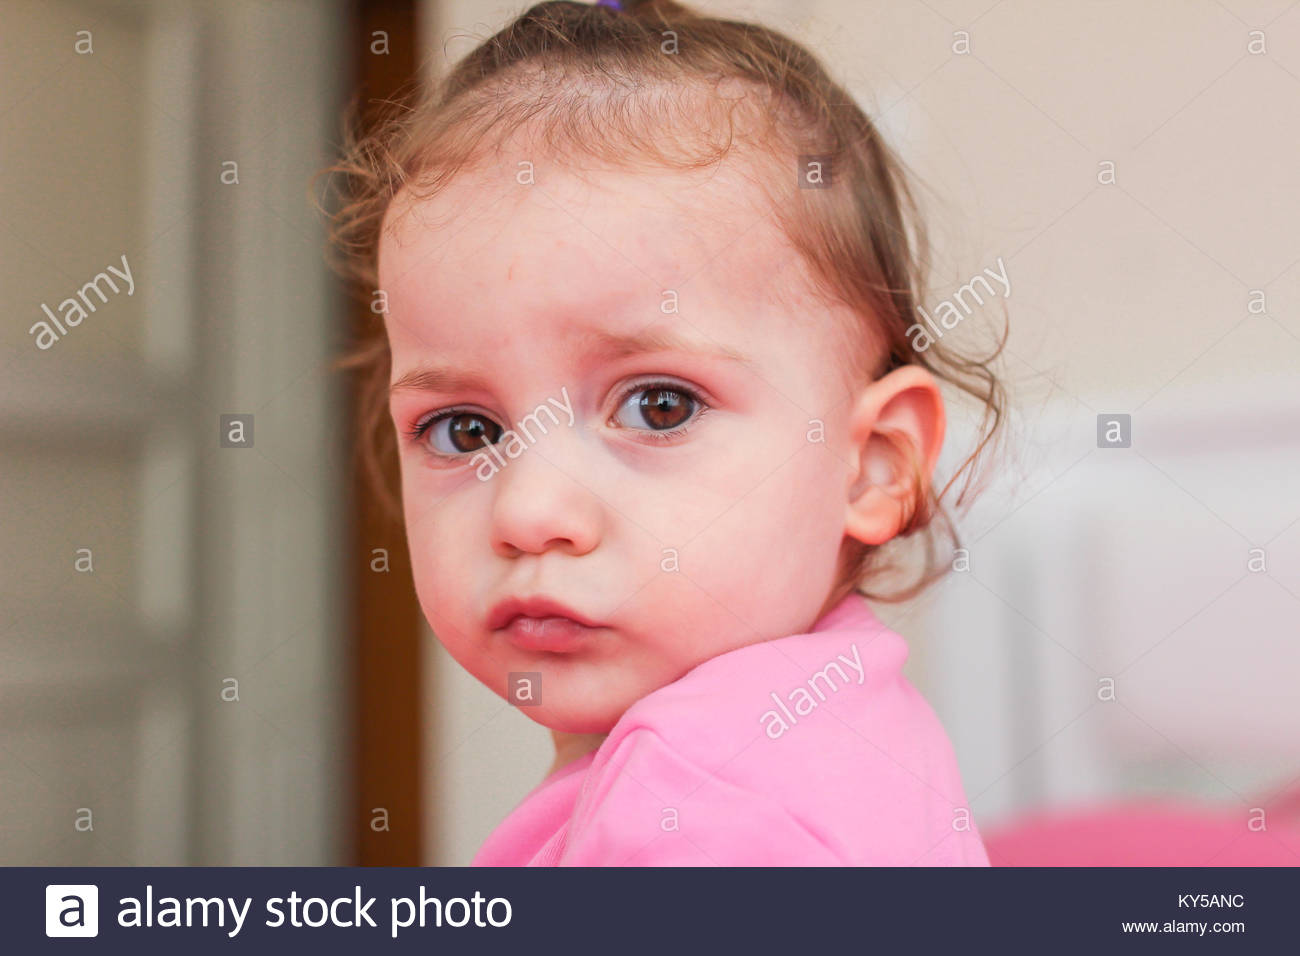 innocent face expression of a little cute baby stock photo